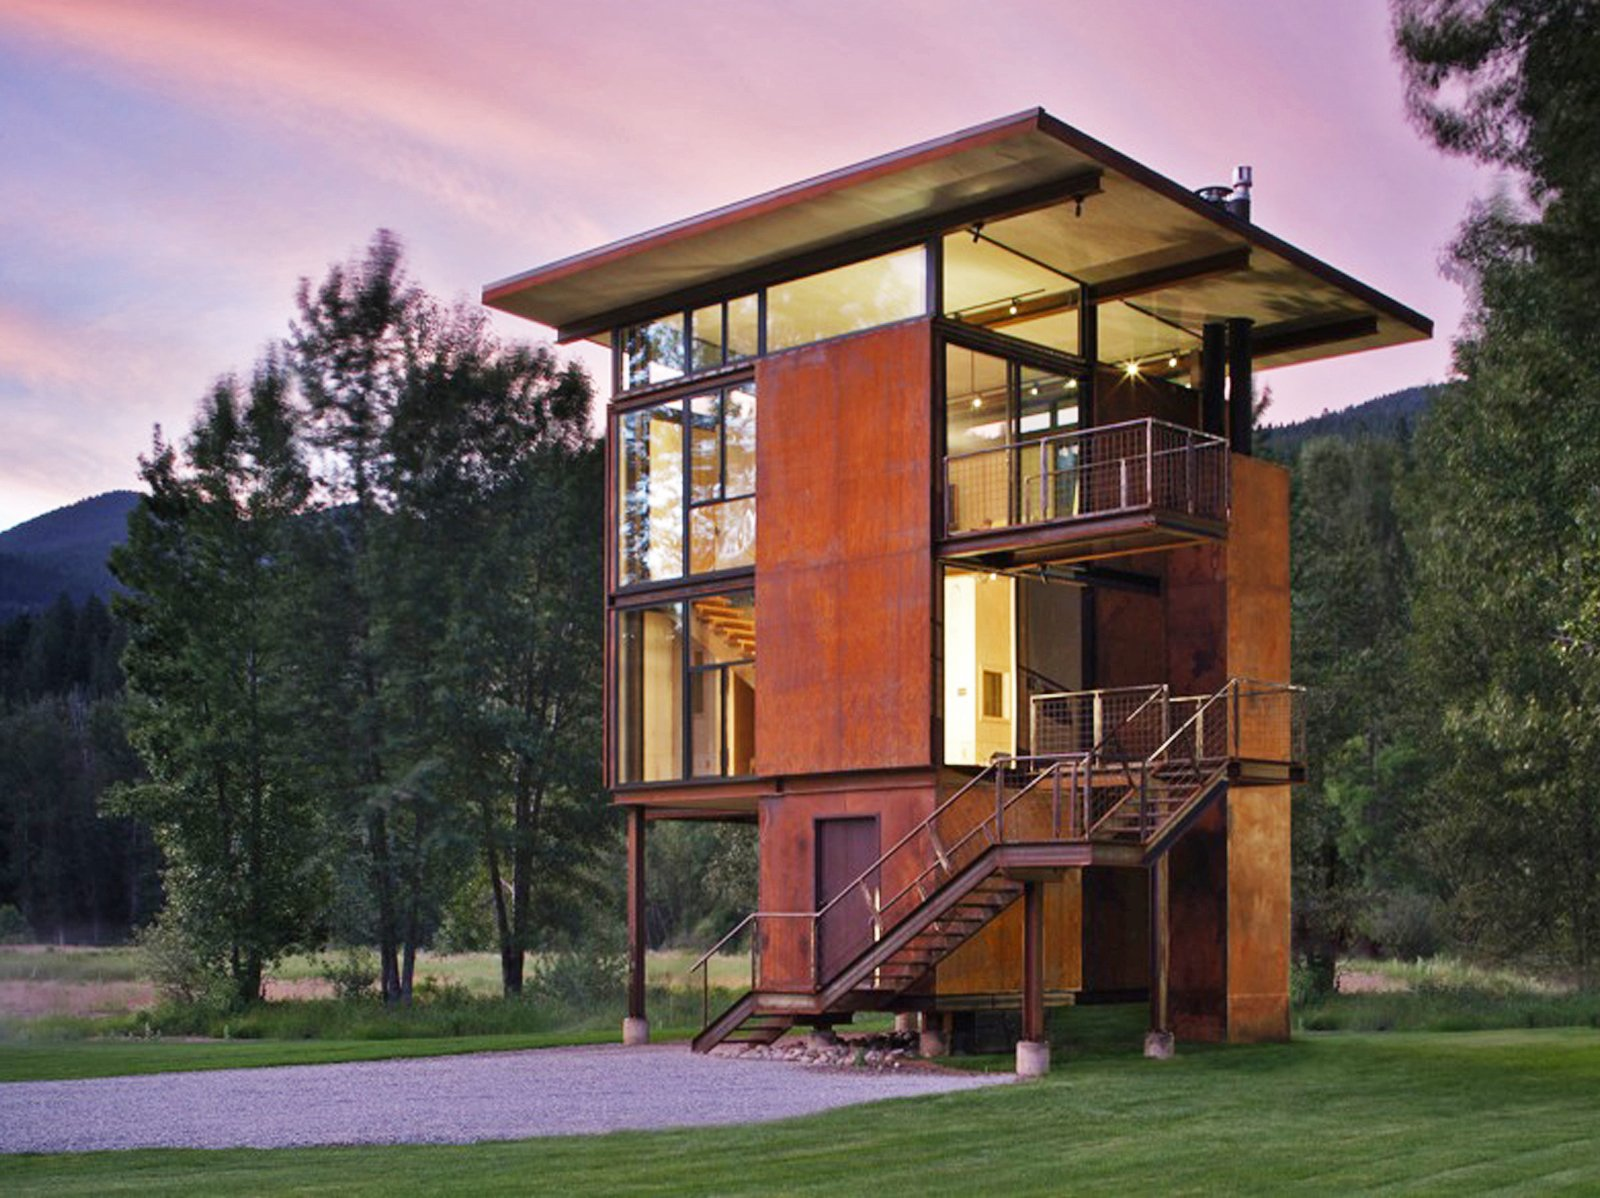 Delta Shelter, designed by Tom Kundig. Photo by Tim Bies, Olson Kundig Architects. Best by DAVE MORIN